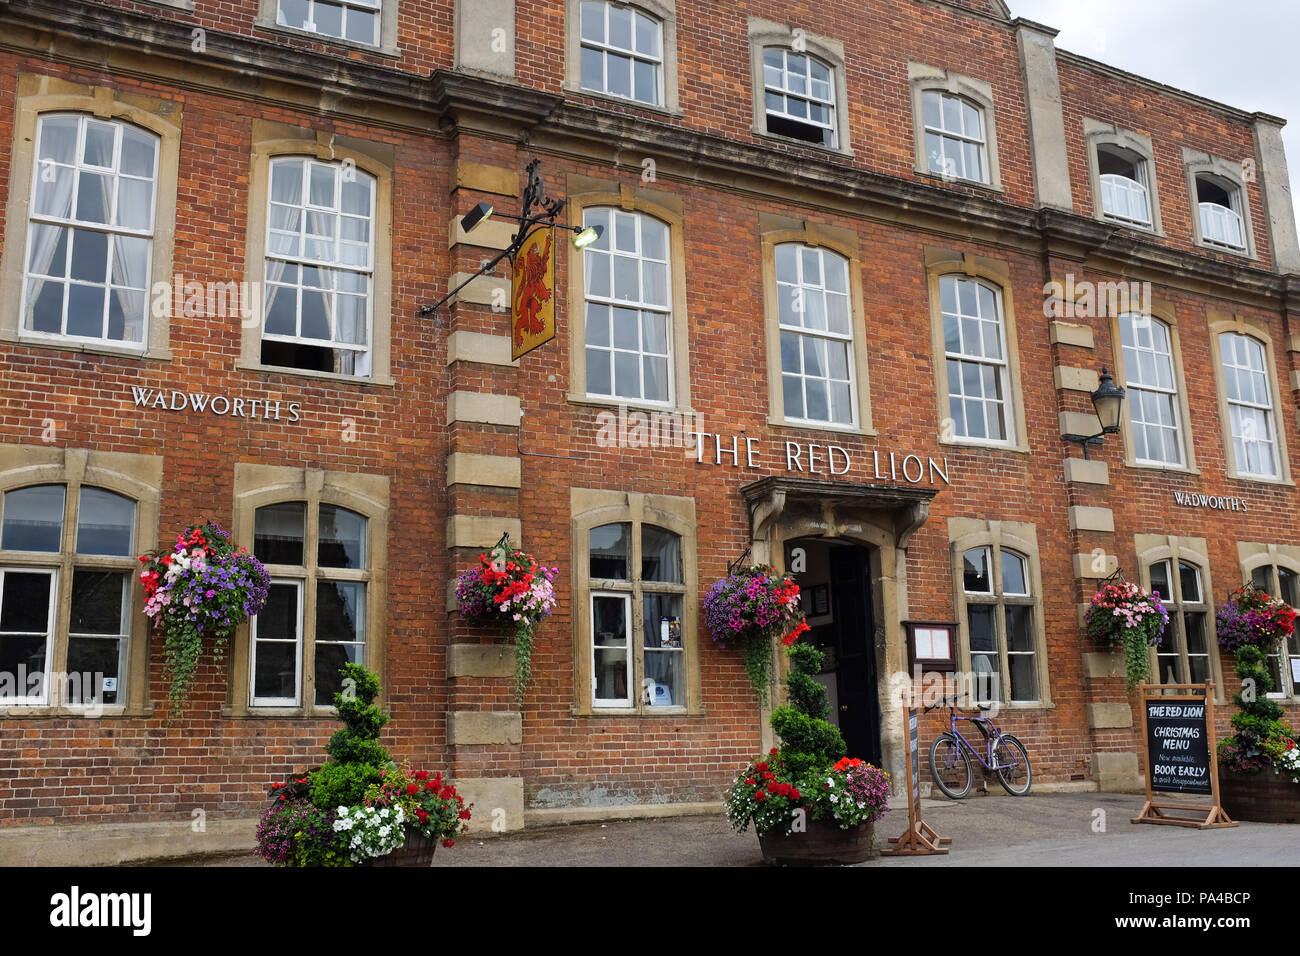 The Red Lion pub in the village of Lacock in Wiltshire, England. - Stock Image